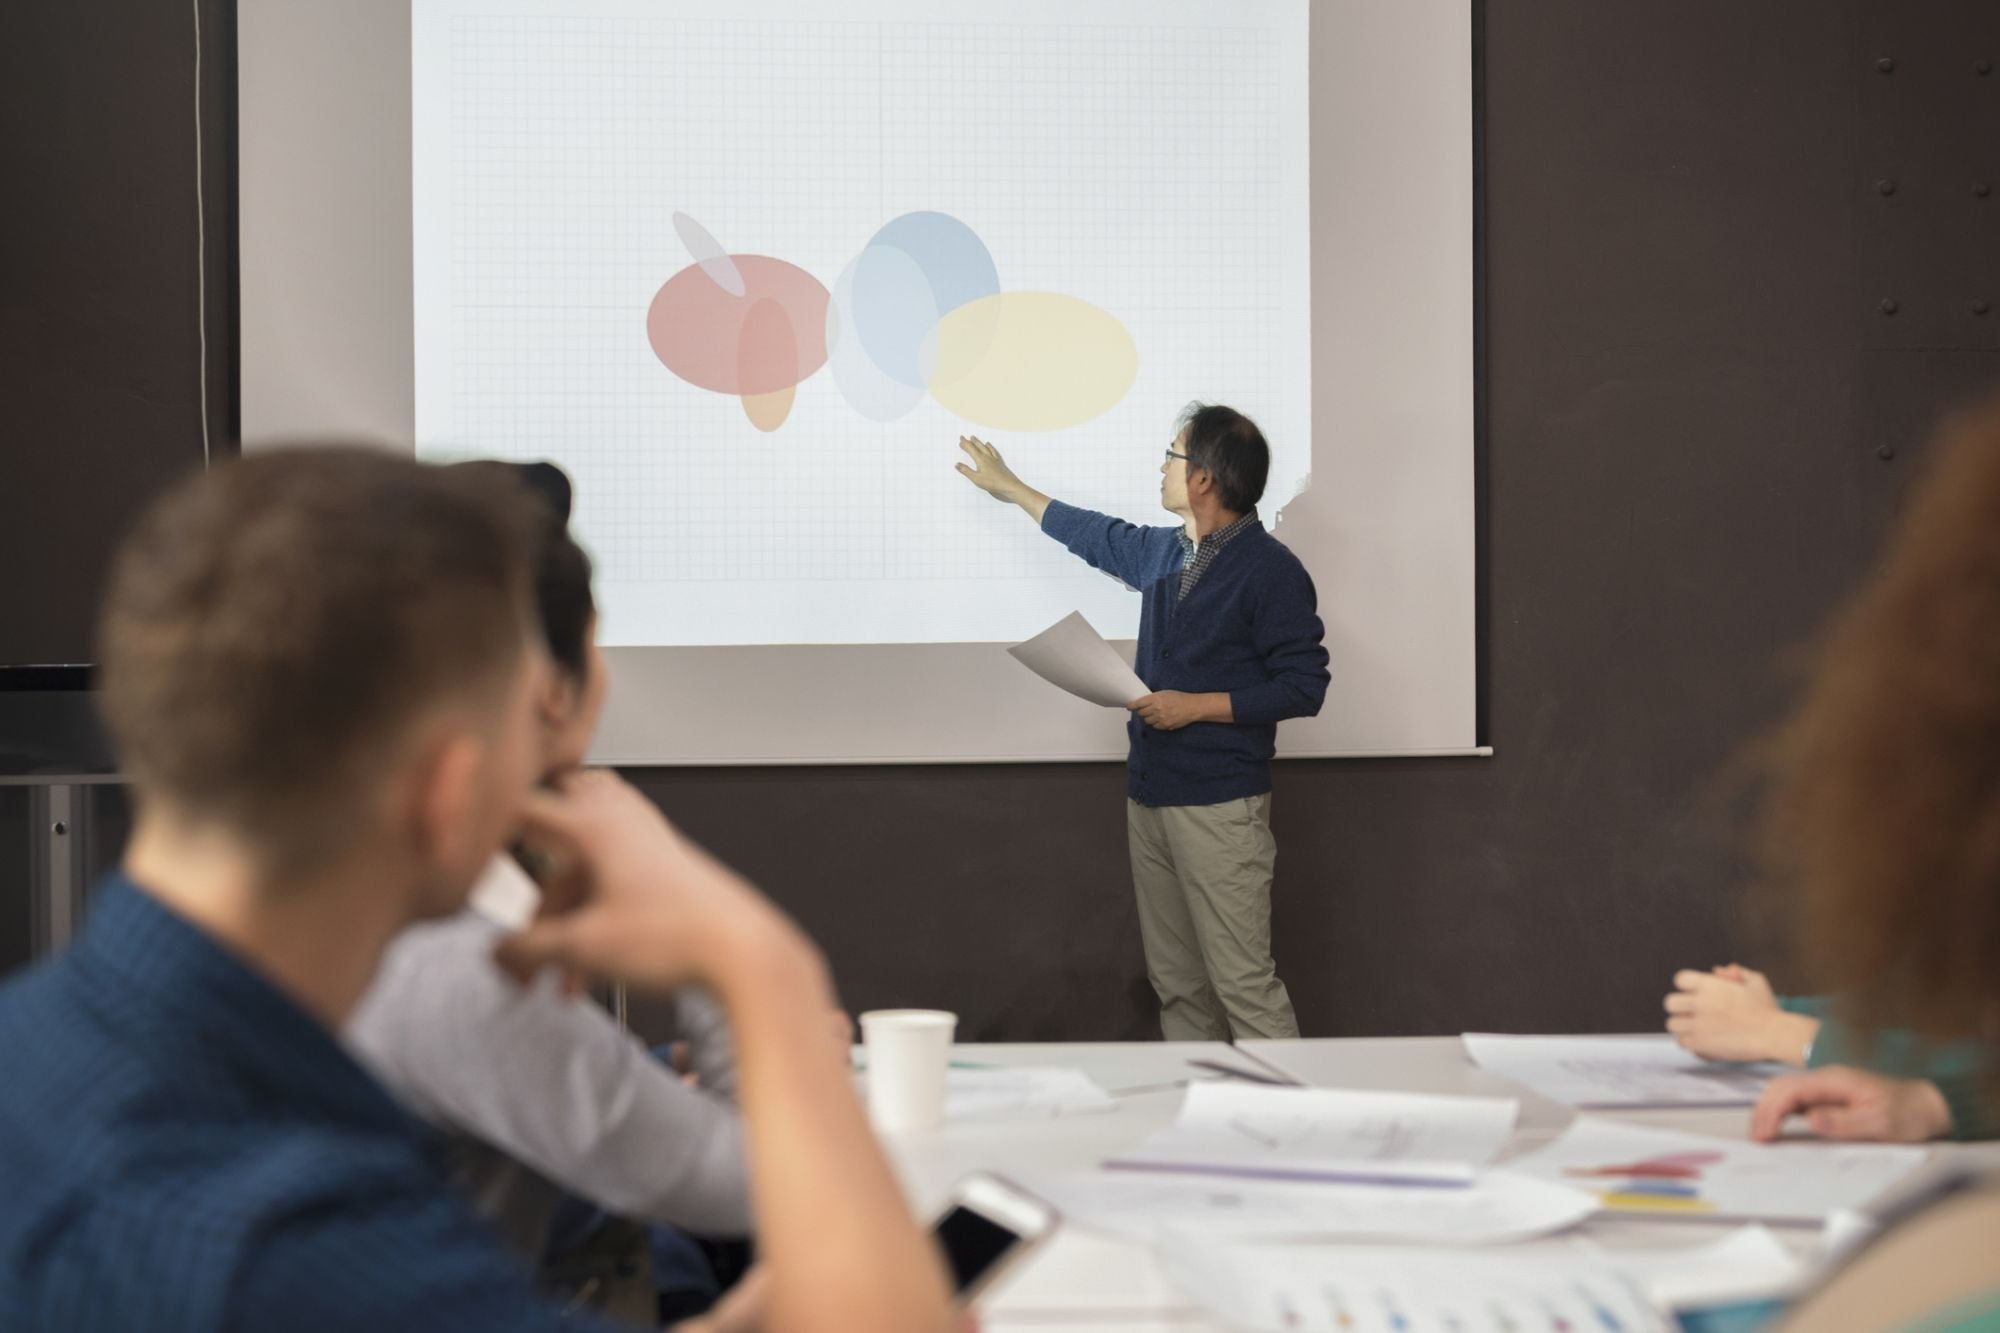 11 Fun Presentation Ideas That Will Help You Engage With Your Audience